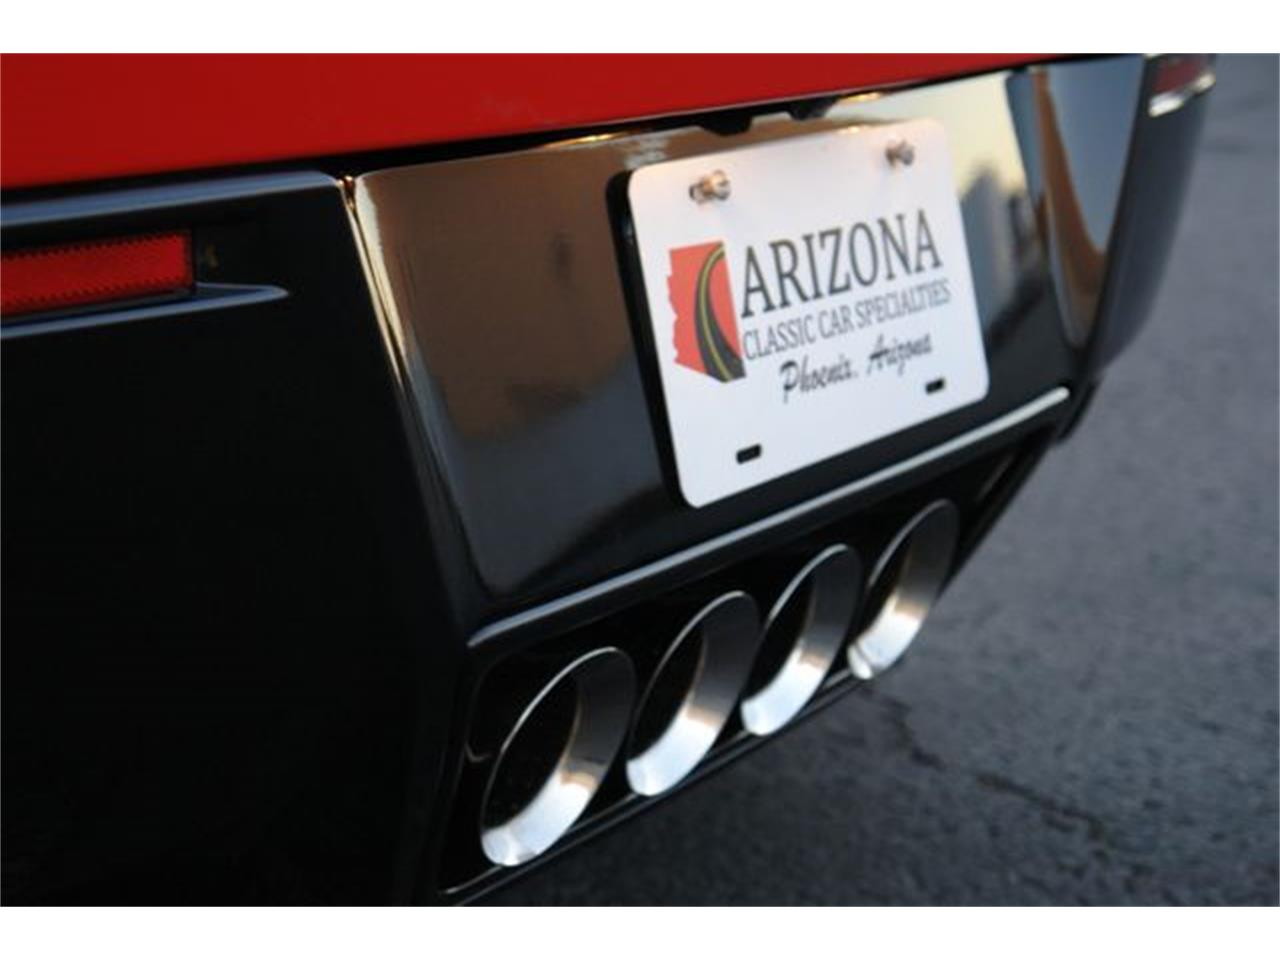 2017 Chevrolet Corvette for sale in Phoenix, AZ – photo 56